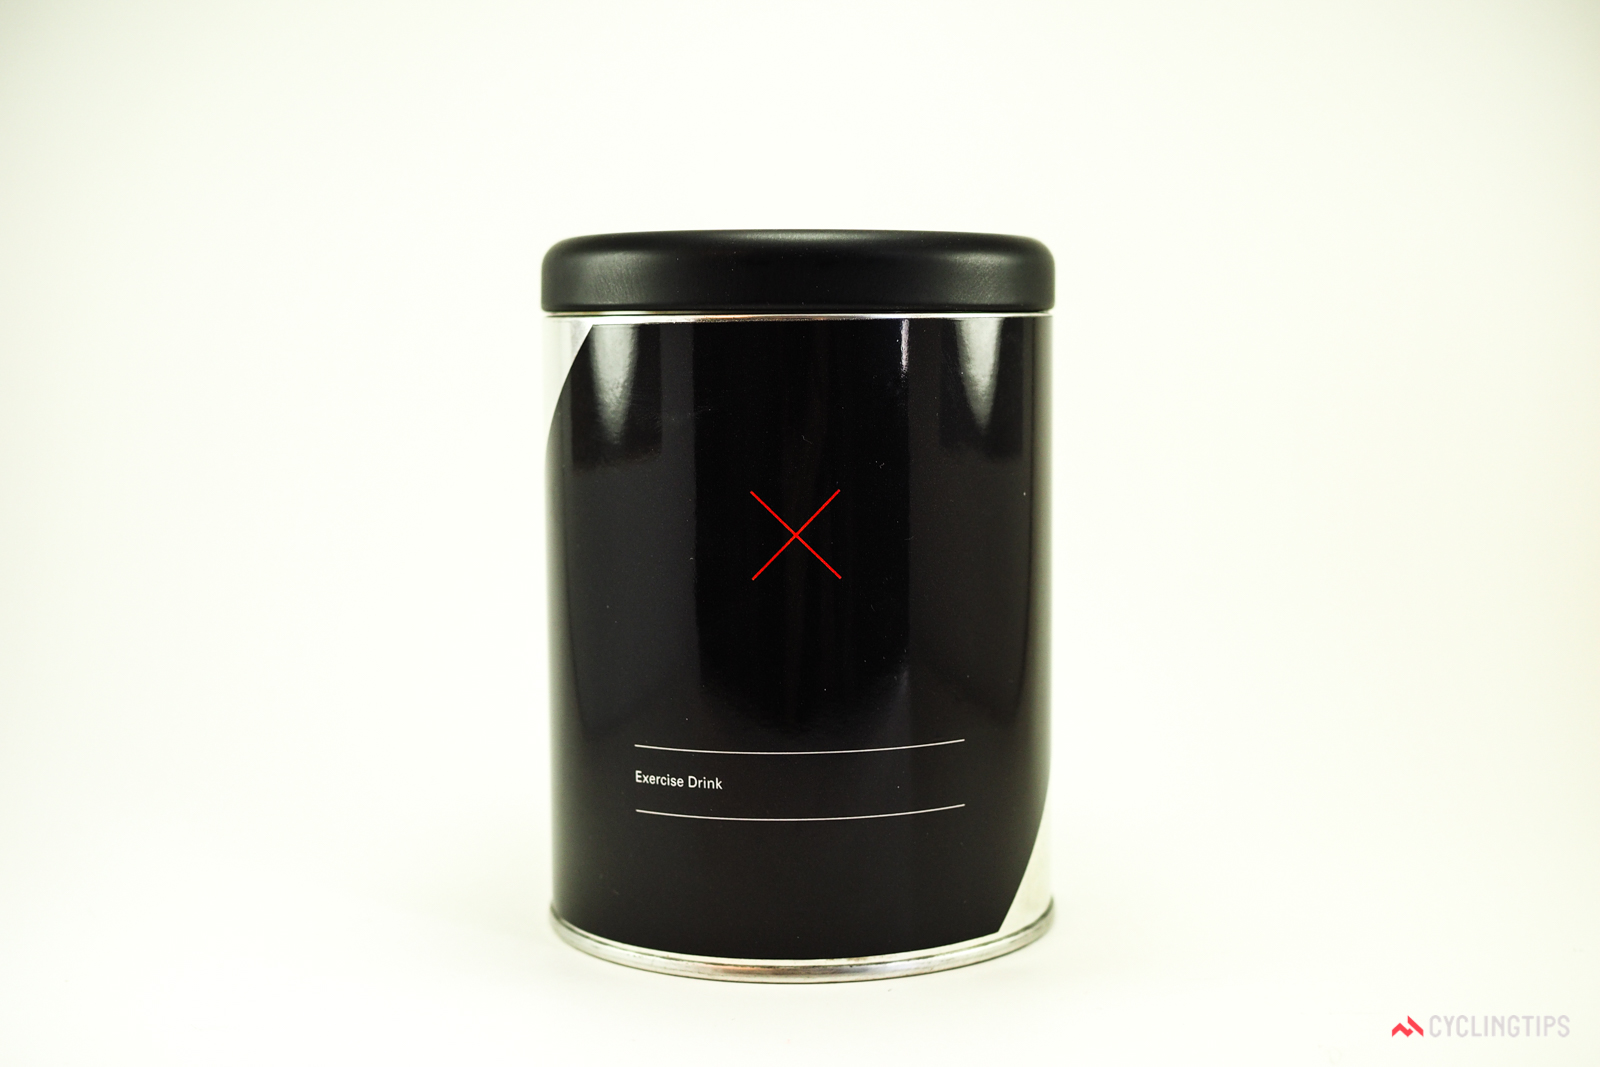 """The founders of Skratch/Secret Drink Mix paid a local design firm $10,000 for the initial """"X"""" logo. This tin design cost extra. Photo: James Huang."""